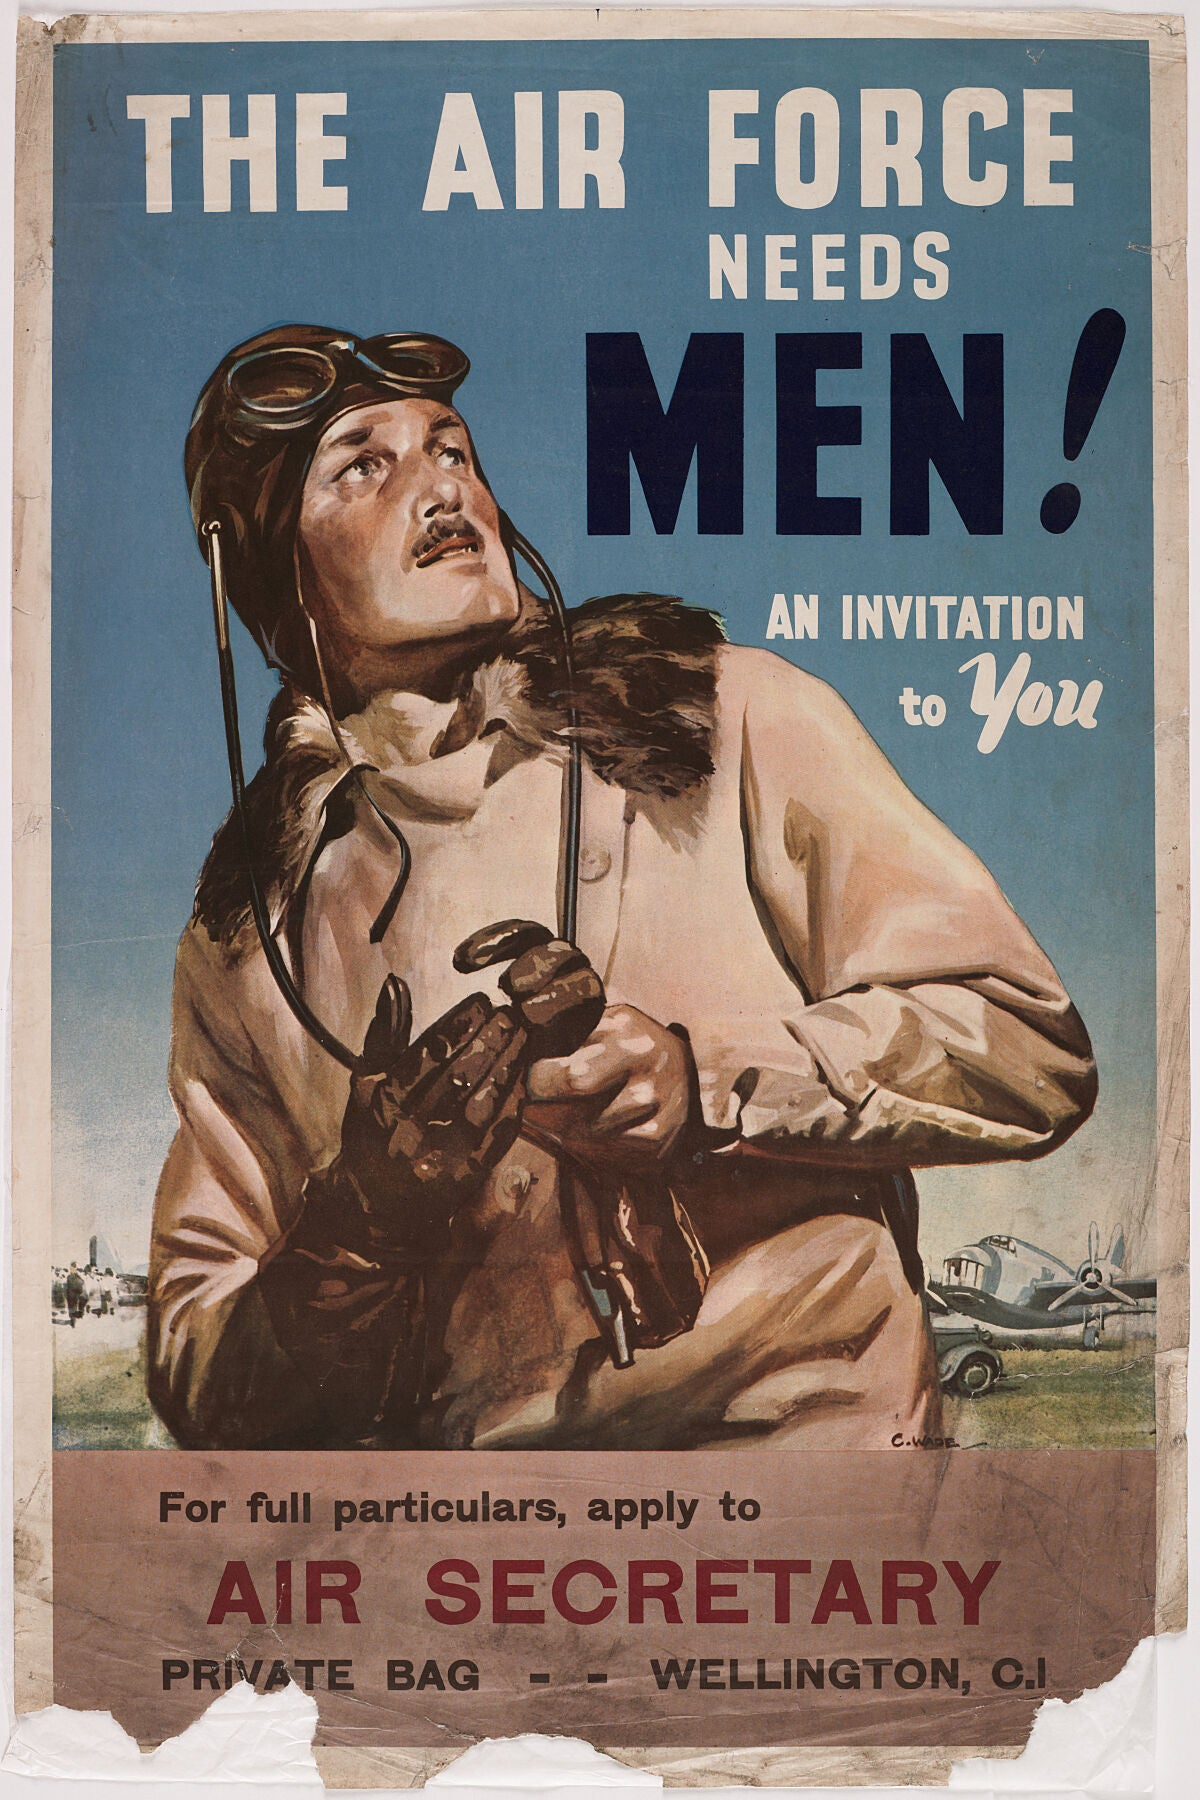 Poster, 'The Air Force Needs Men!', Early 1941, Wellington, by Claude Wade.